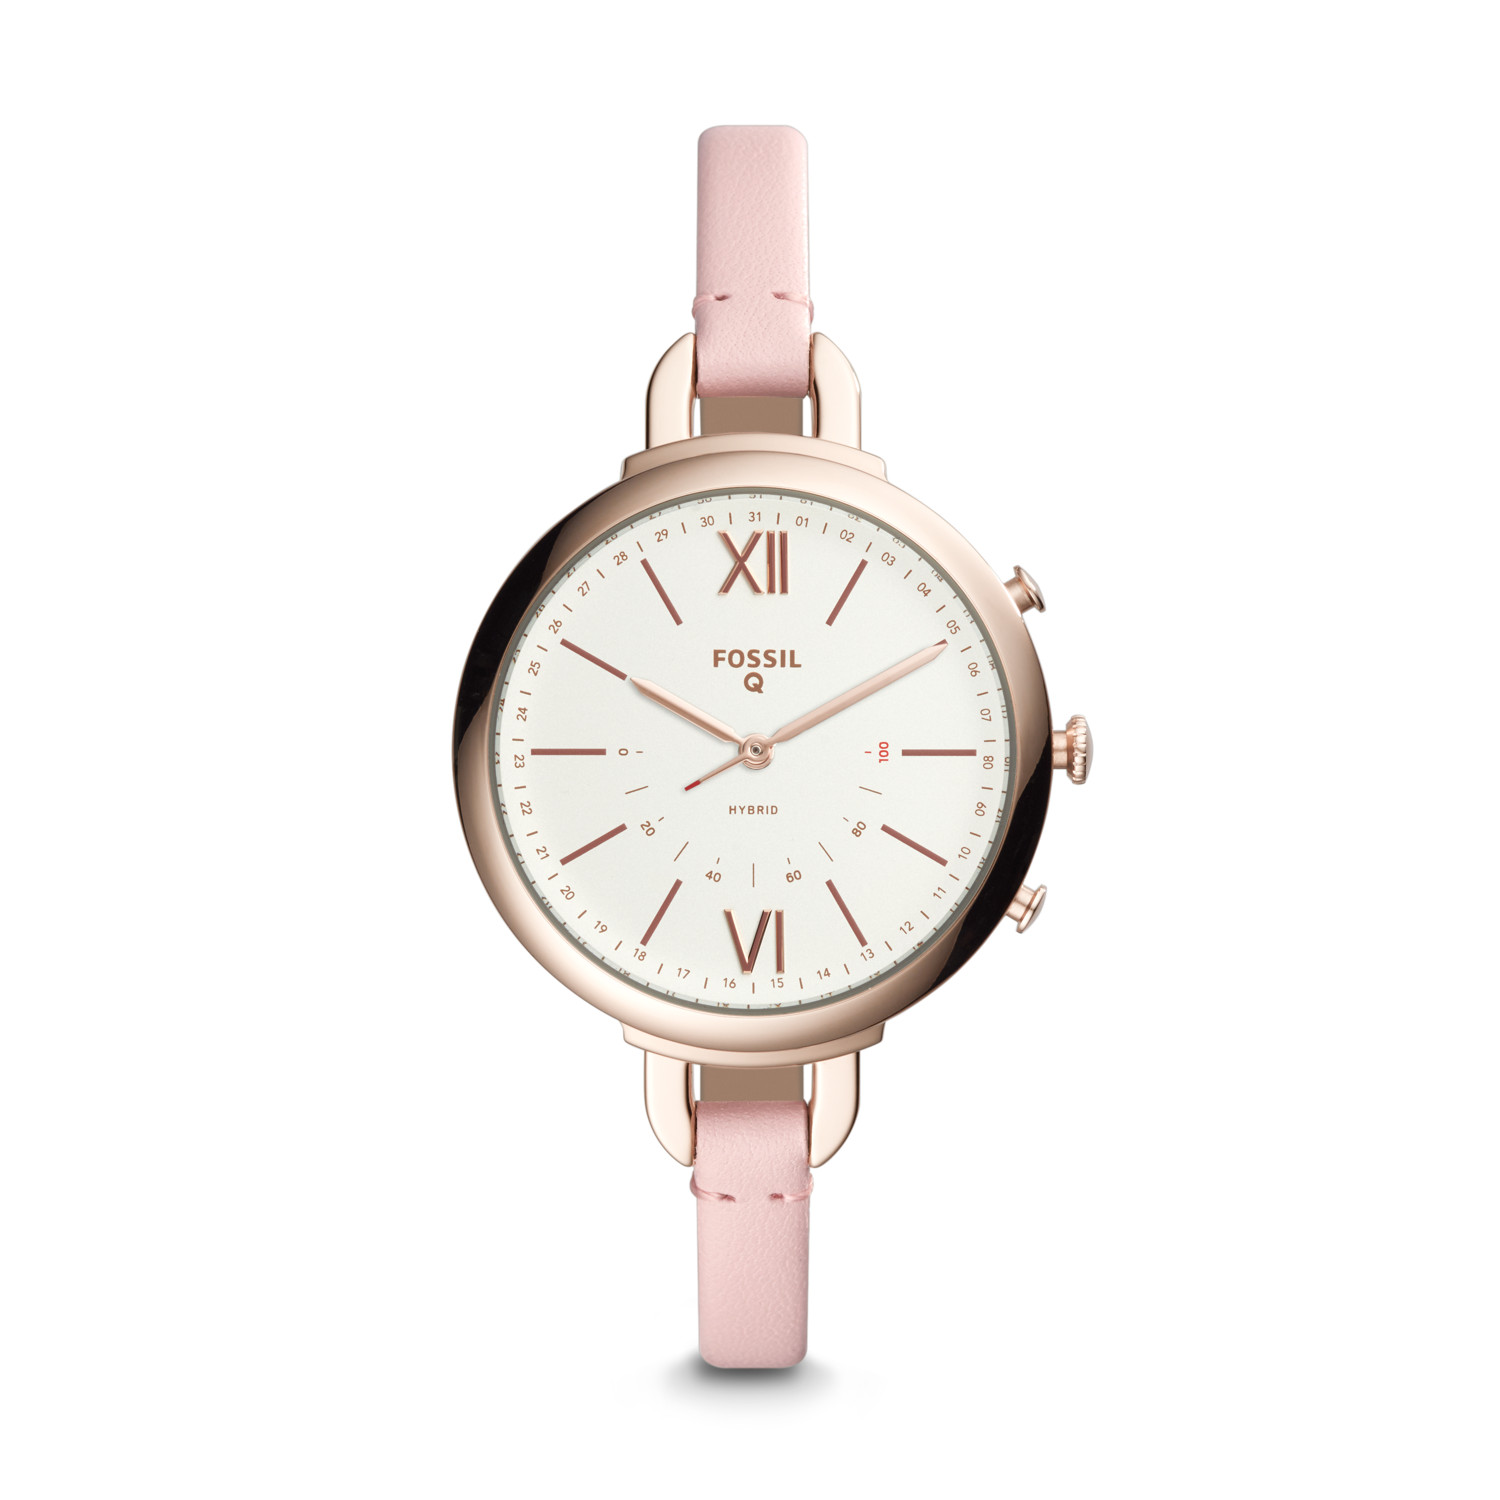 Hybrid Smartwatch Annette Pink Leather Fossil